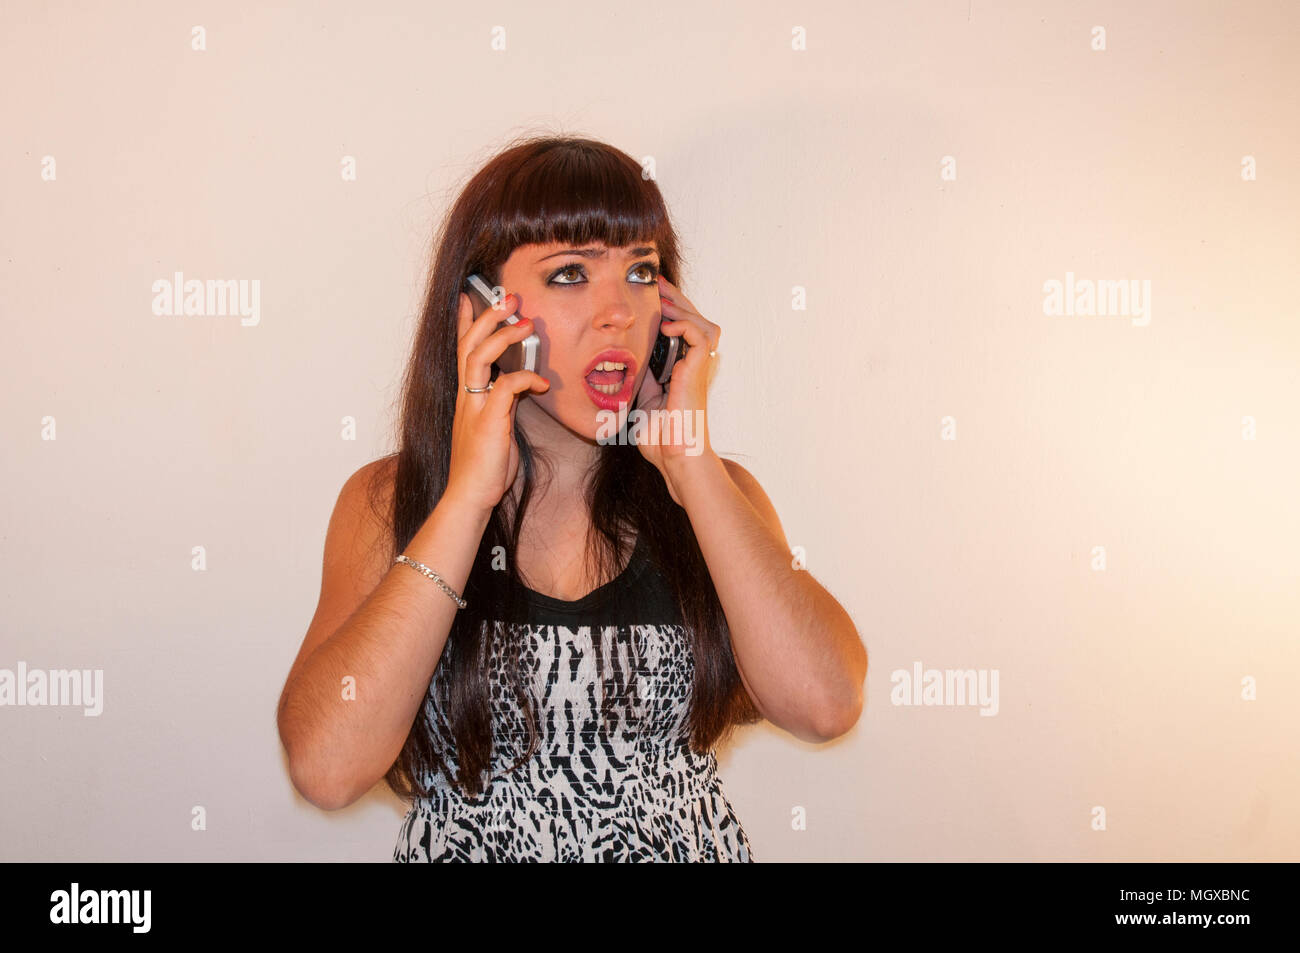 Young woman using two mobile phones. - Stock Image